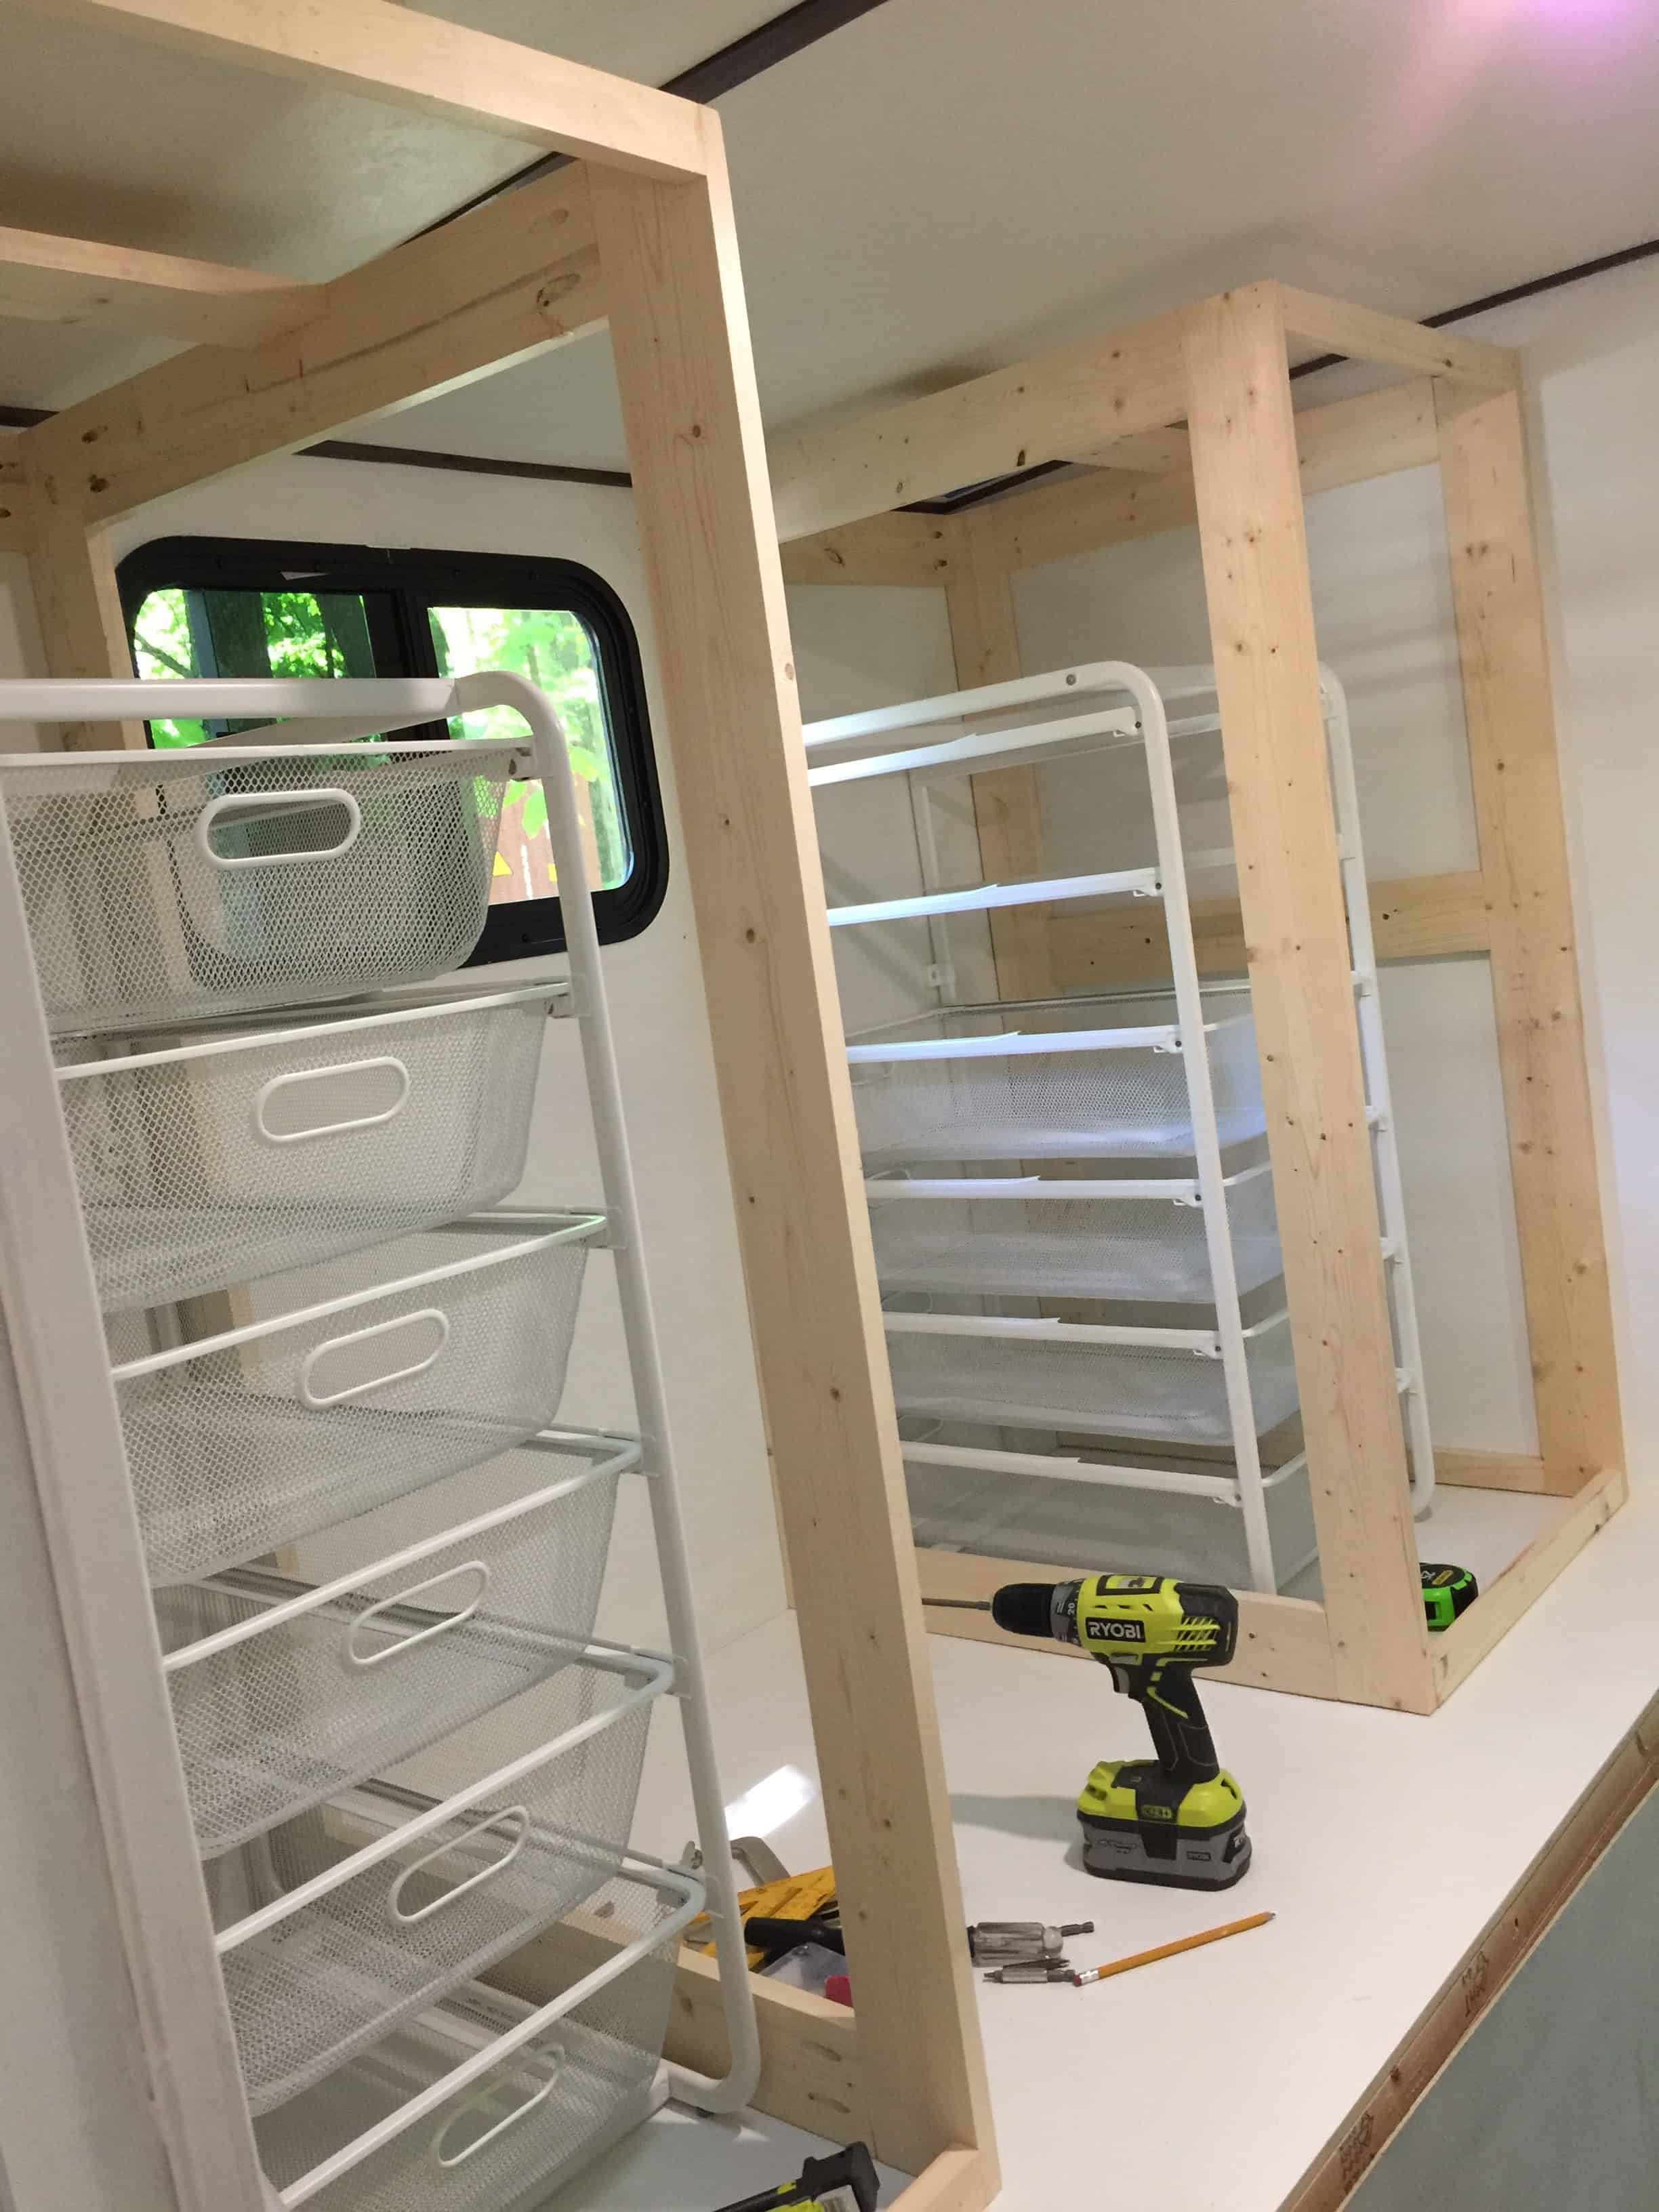 Saved by Scottie rv remodel cabinet build dresser cabinets in place